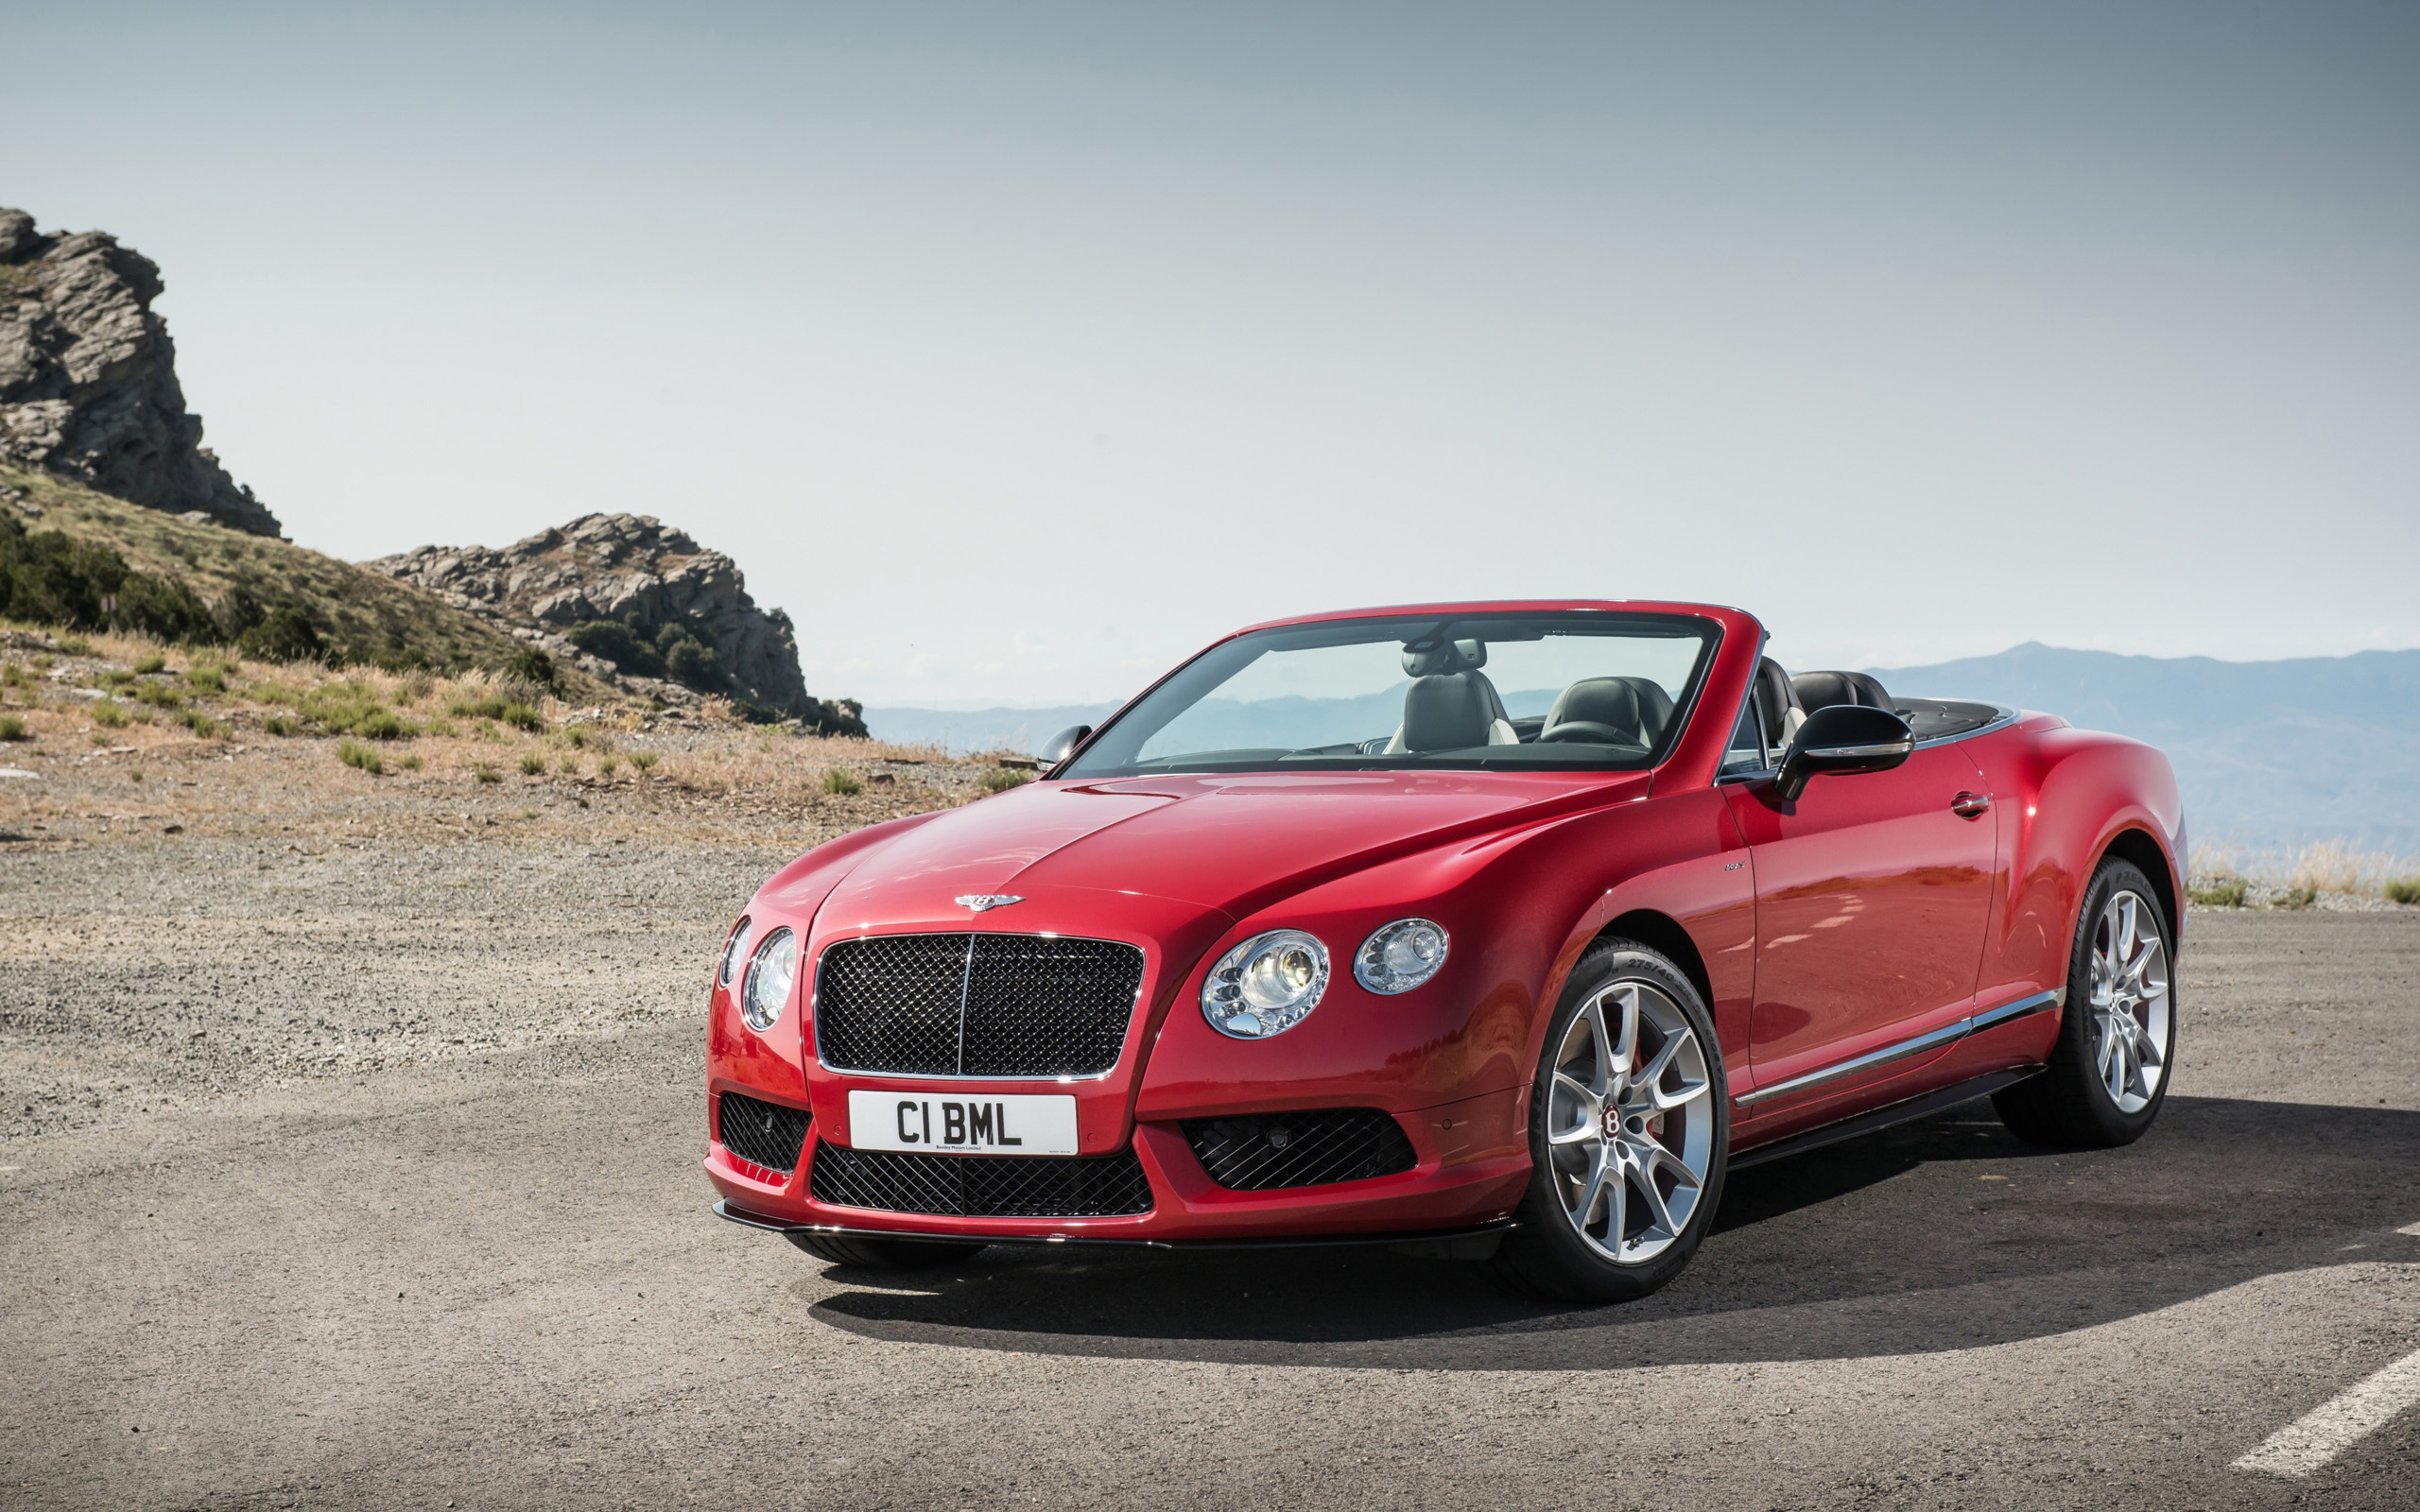 2014 Bentley Continental GT V8 S Convertible Wallpaper | HD Car ...